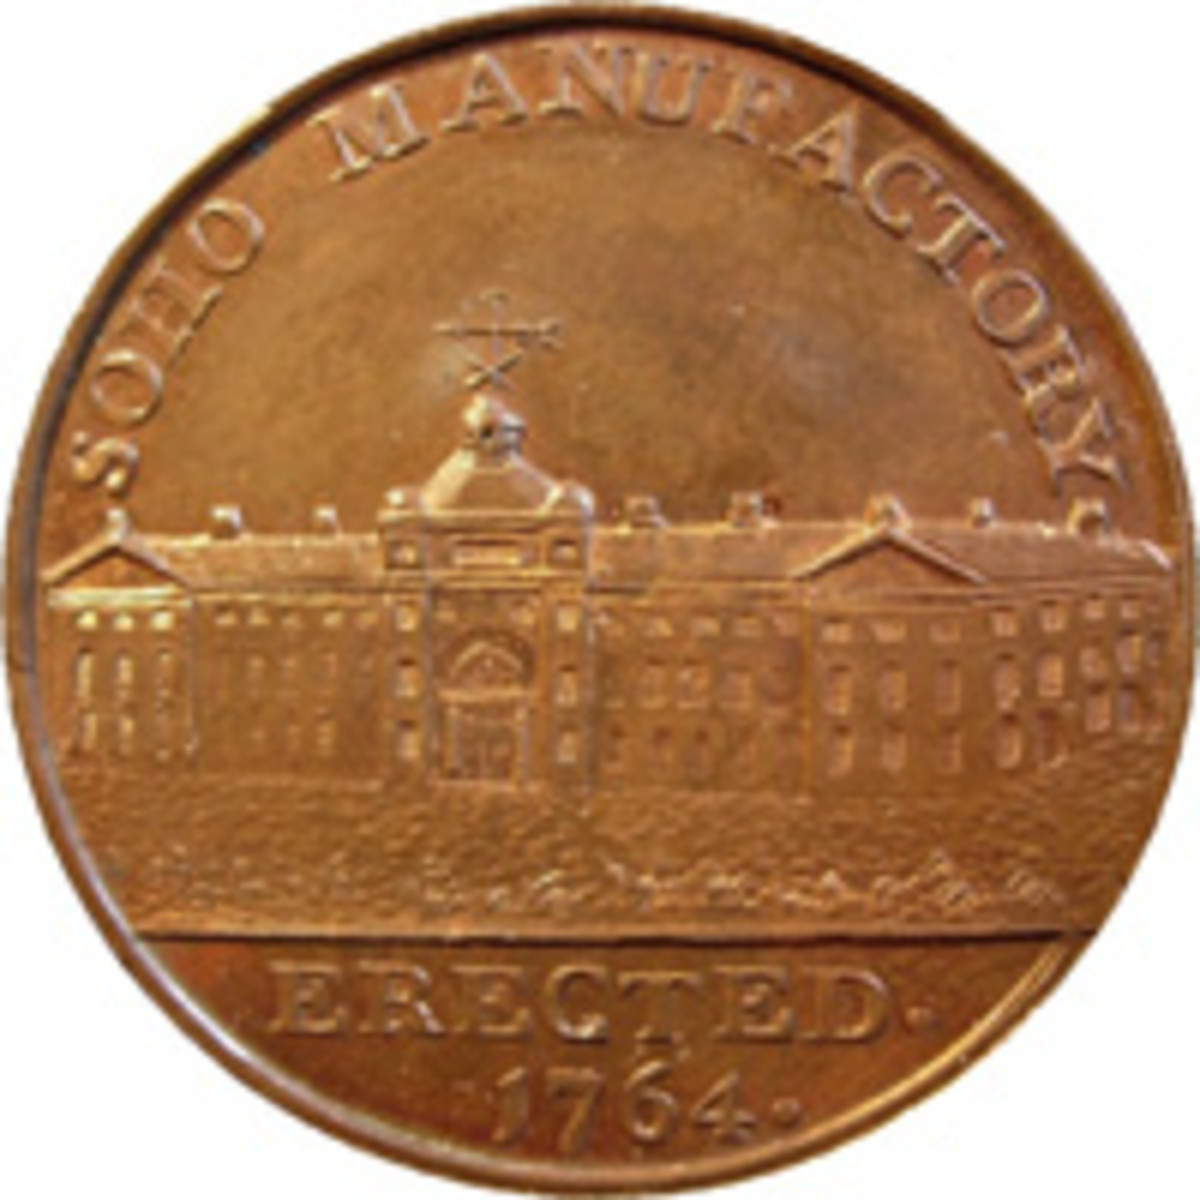 Copper token by Peter Kempson, 1797, depicting Matthew Boulton's Soho Manufactory. (Image courtesy and © Chris Leather www.sohomint.info)